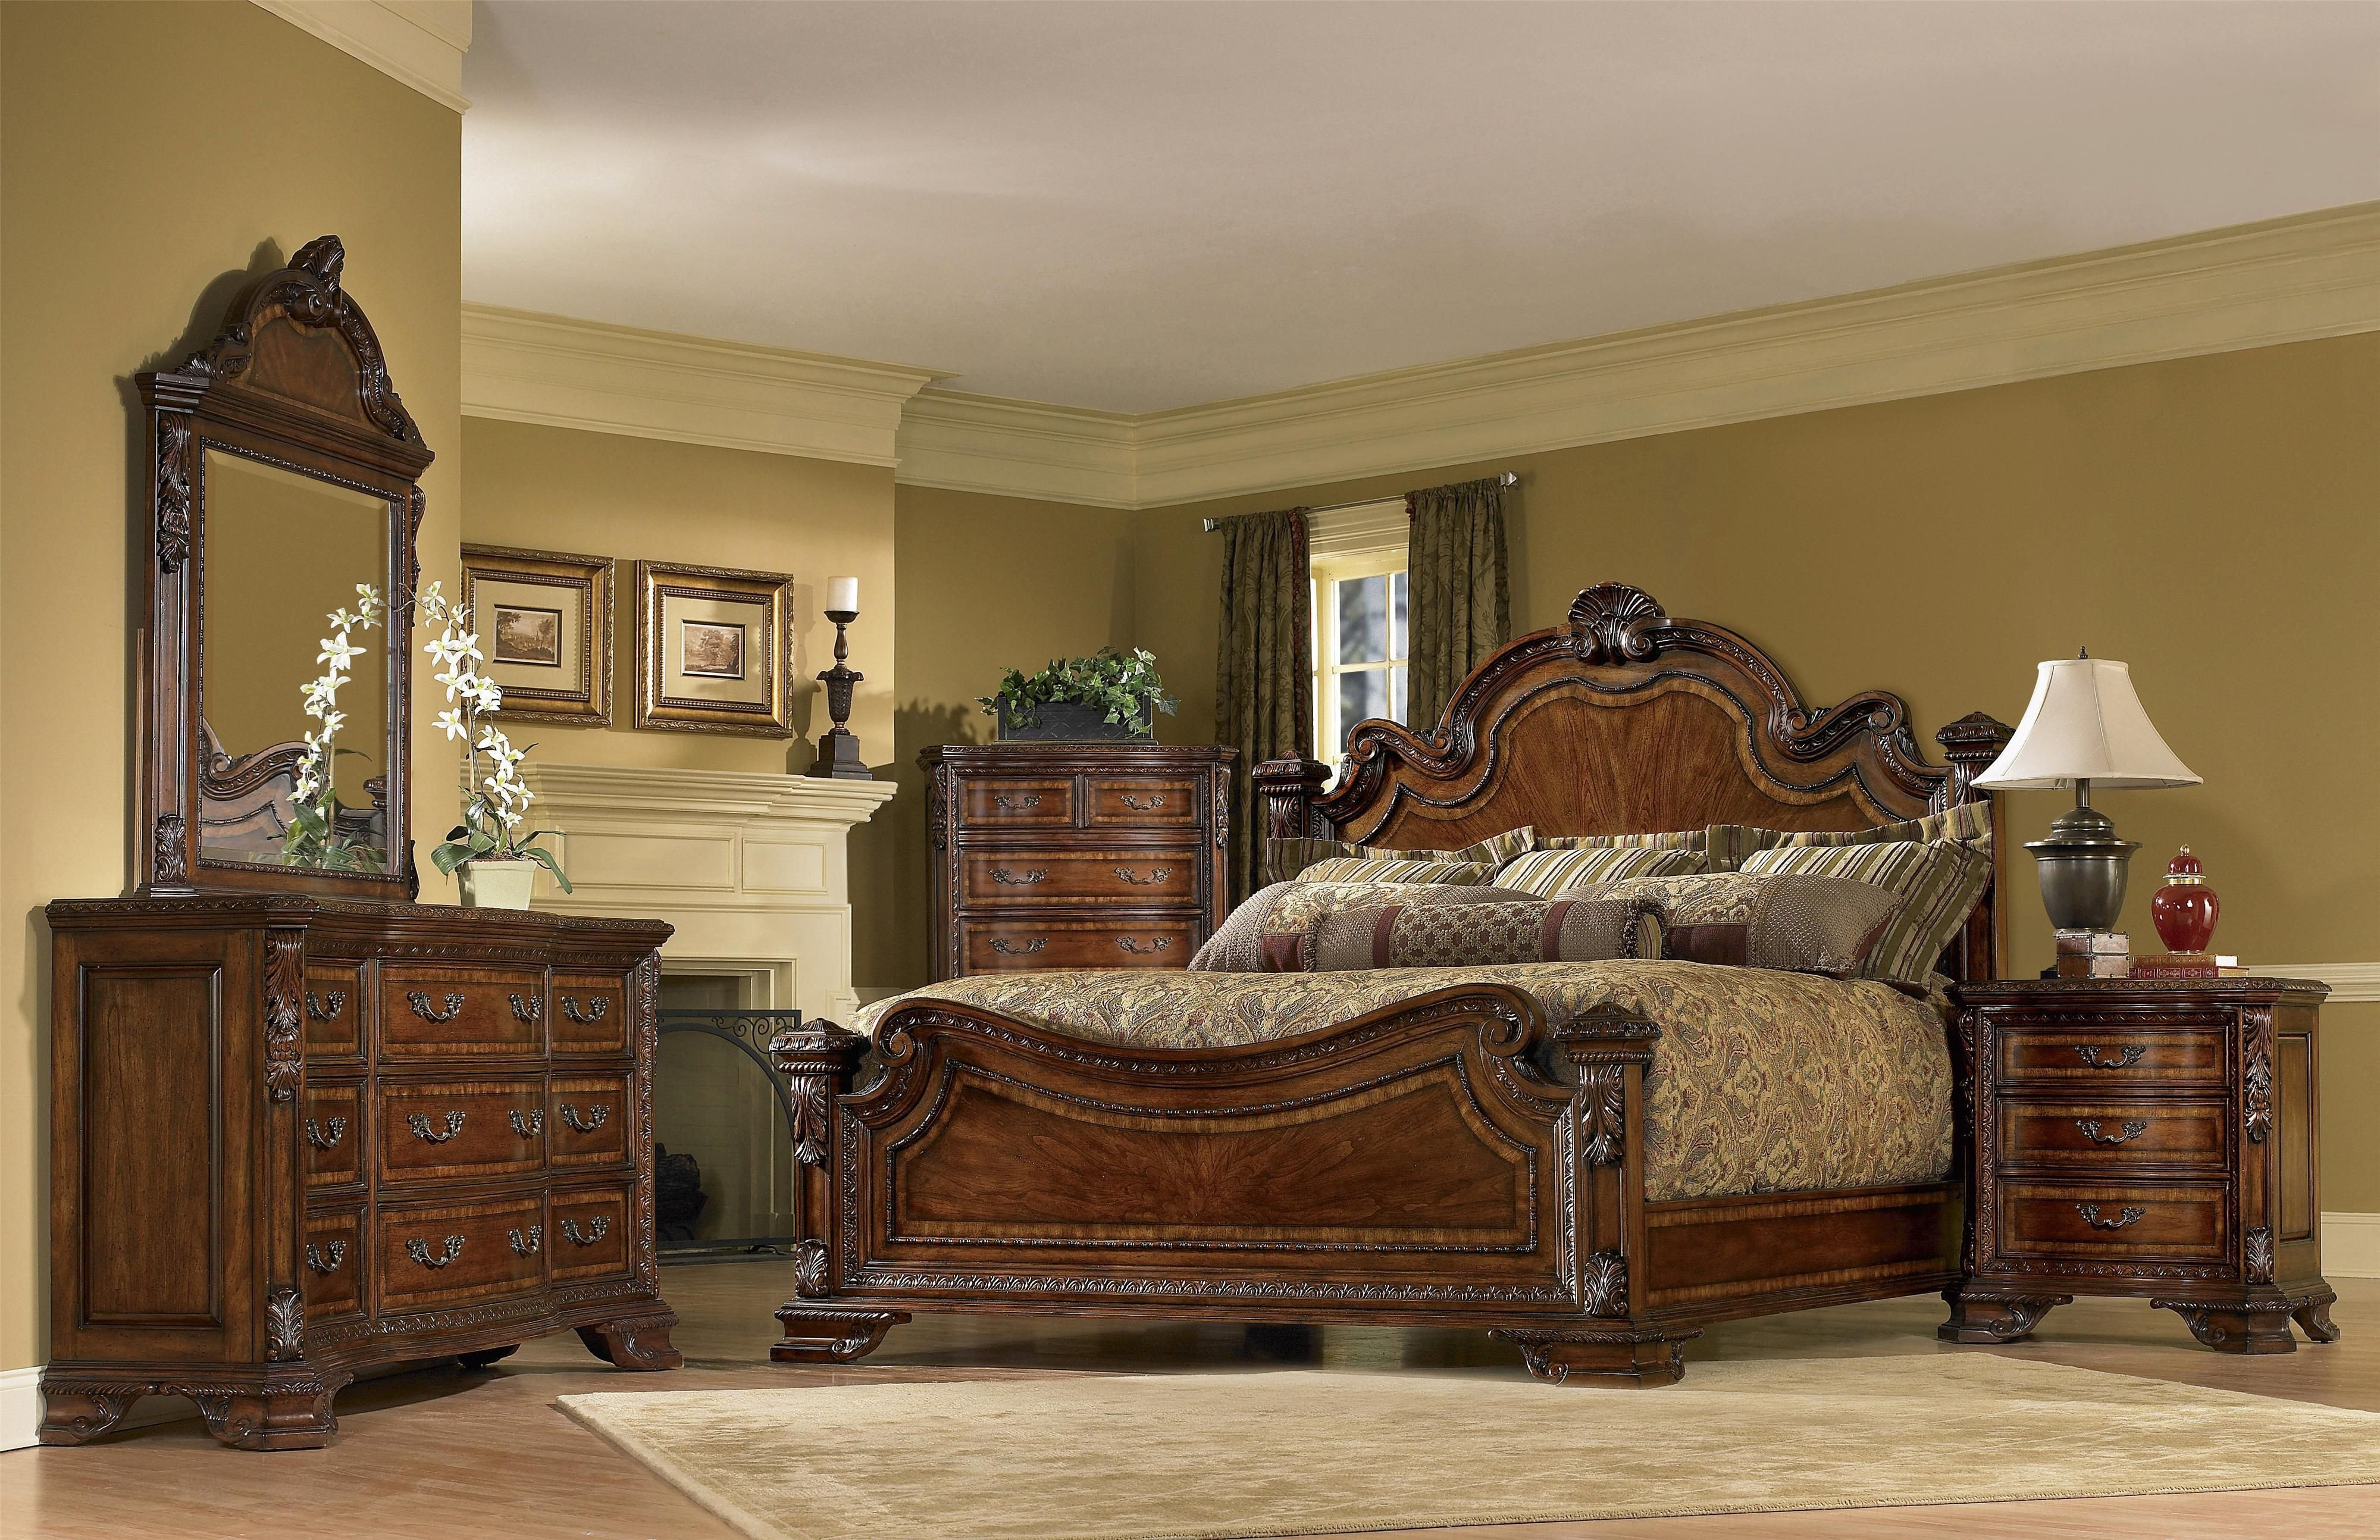 King Bedroom Furniture Set Beautiful Old World King Bedroom Group by A R T Furniture Inc